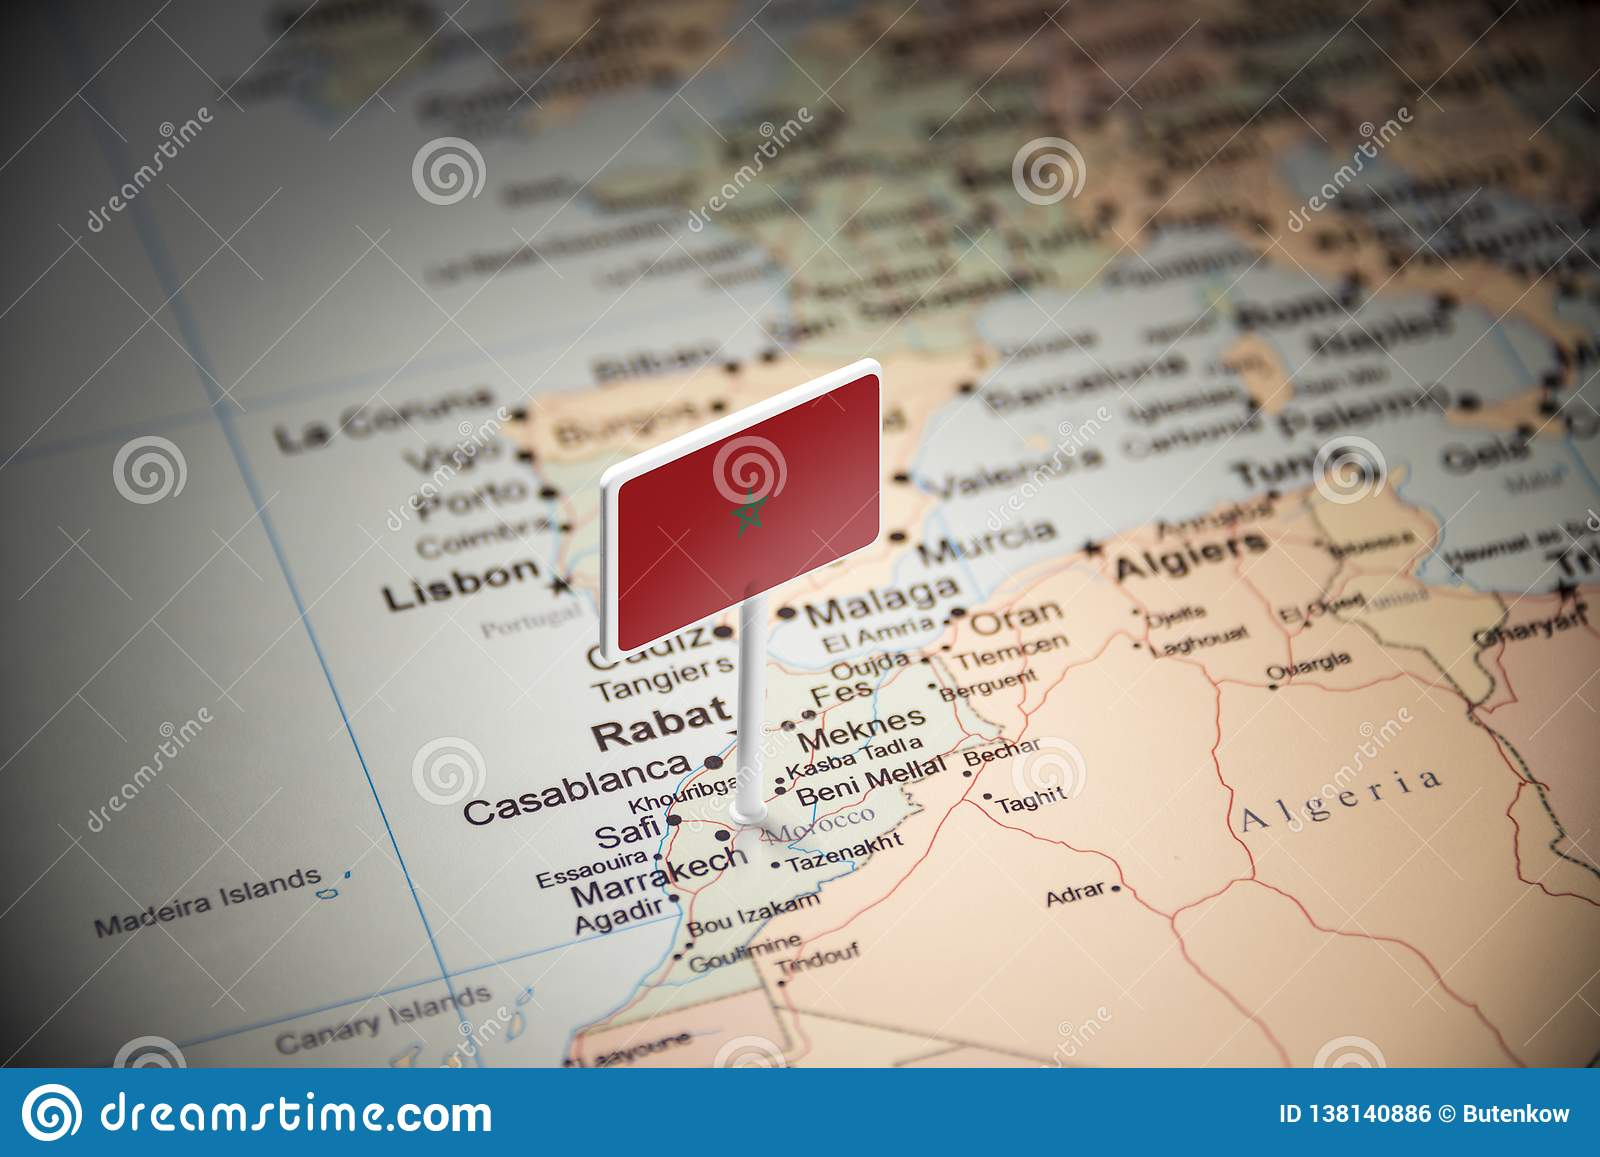 Morocco marked with a flag on the map